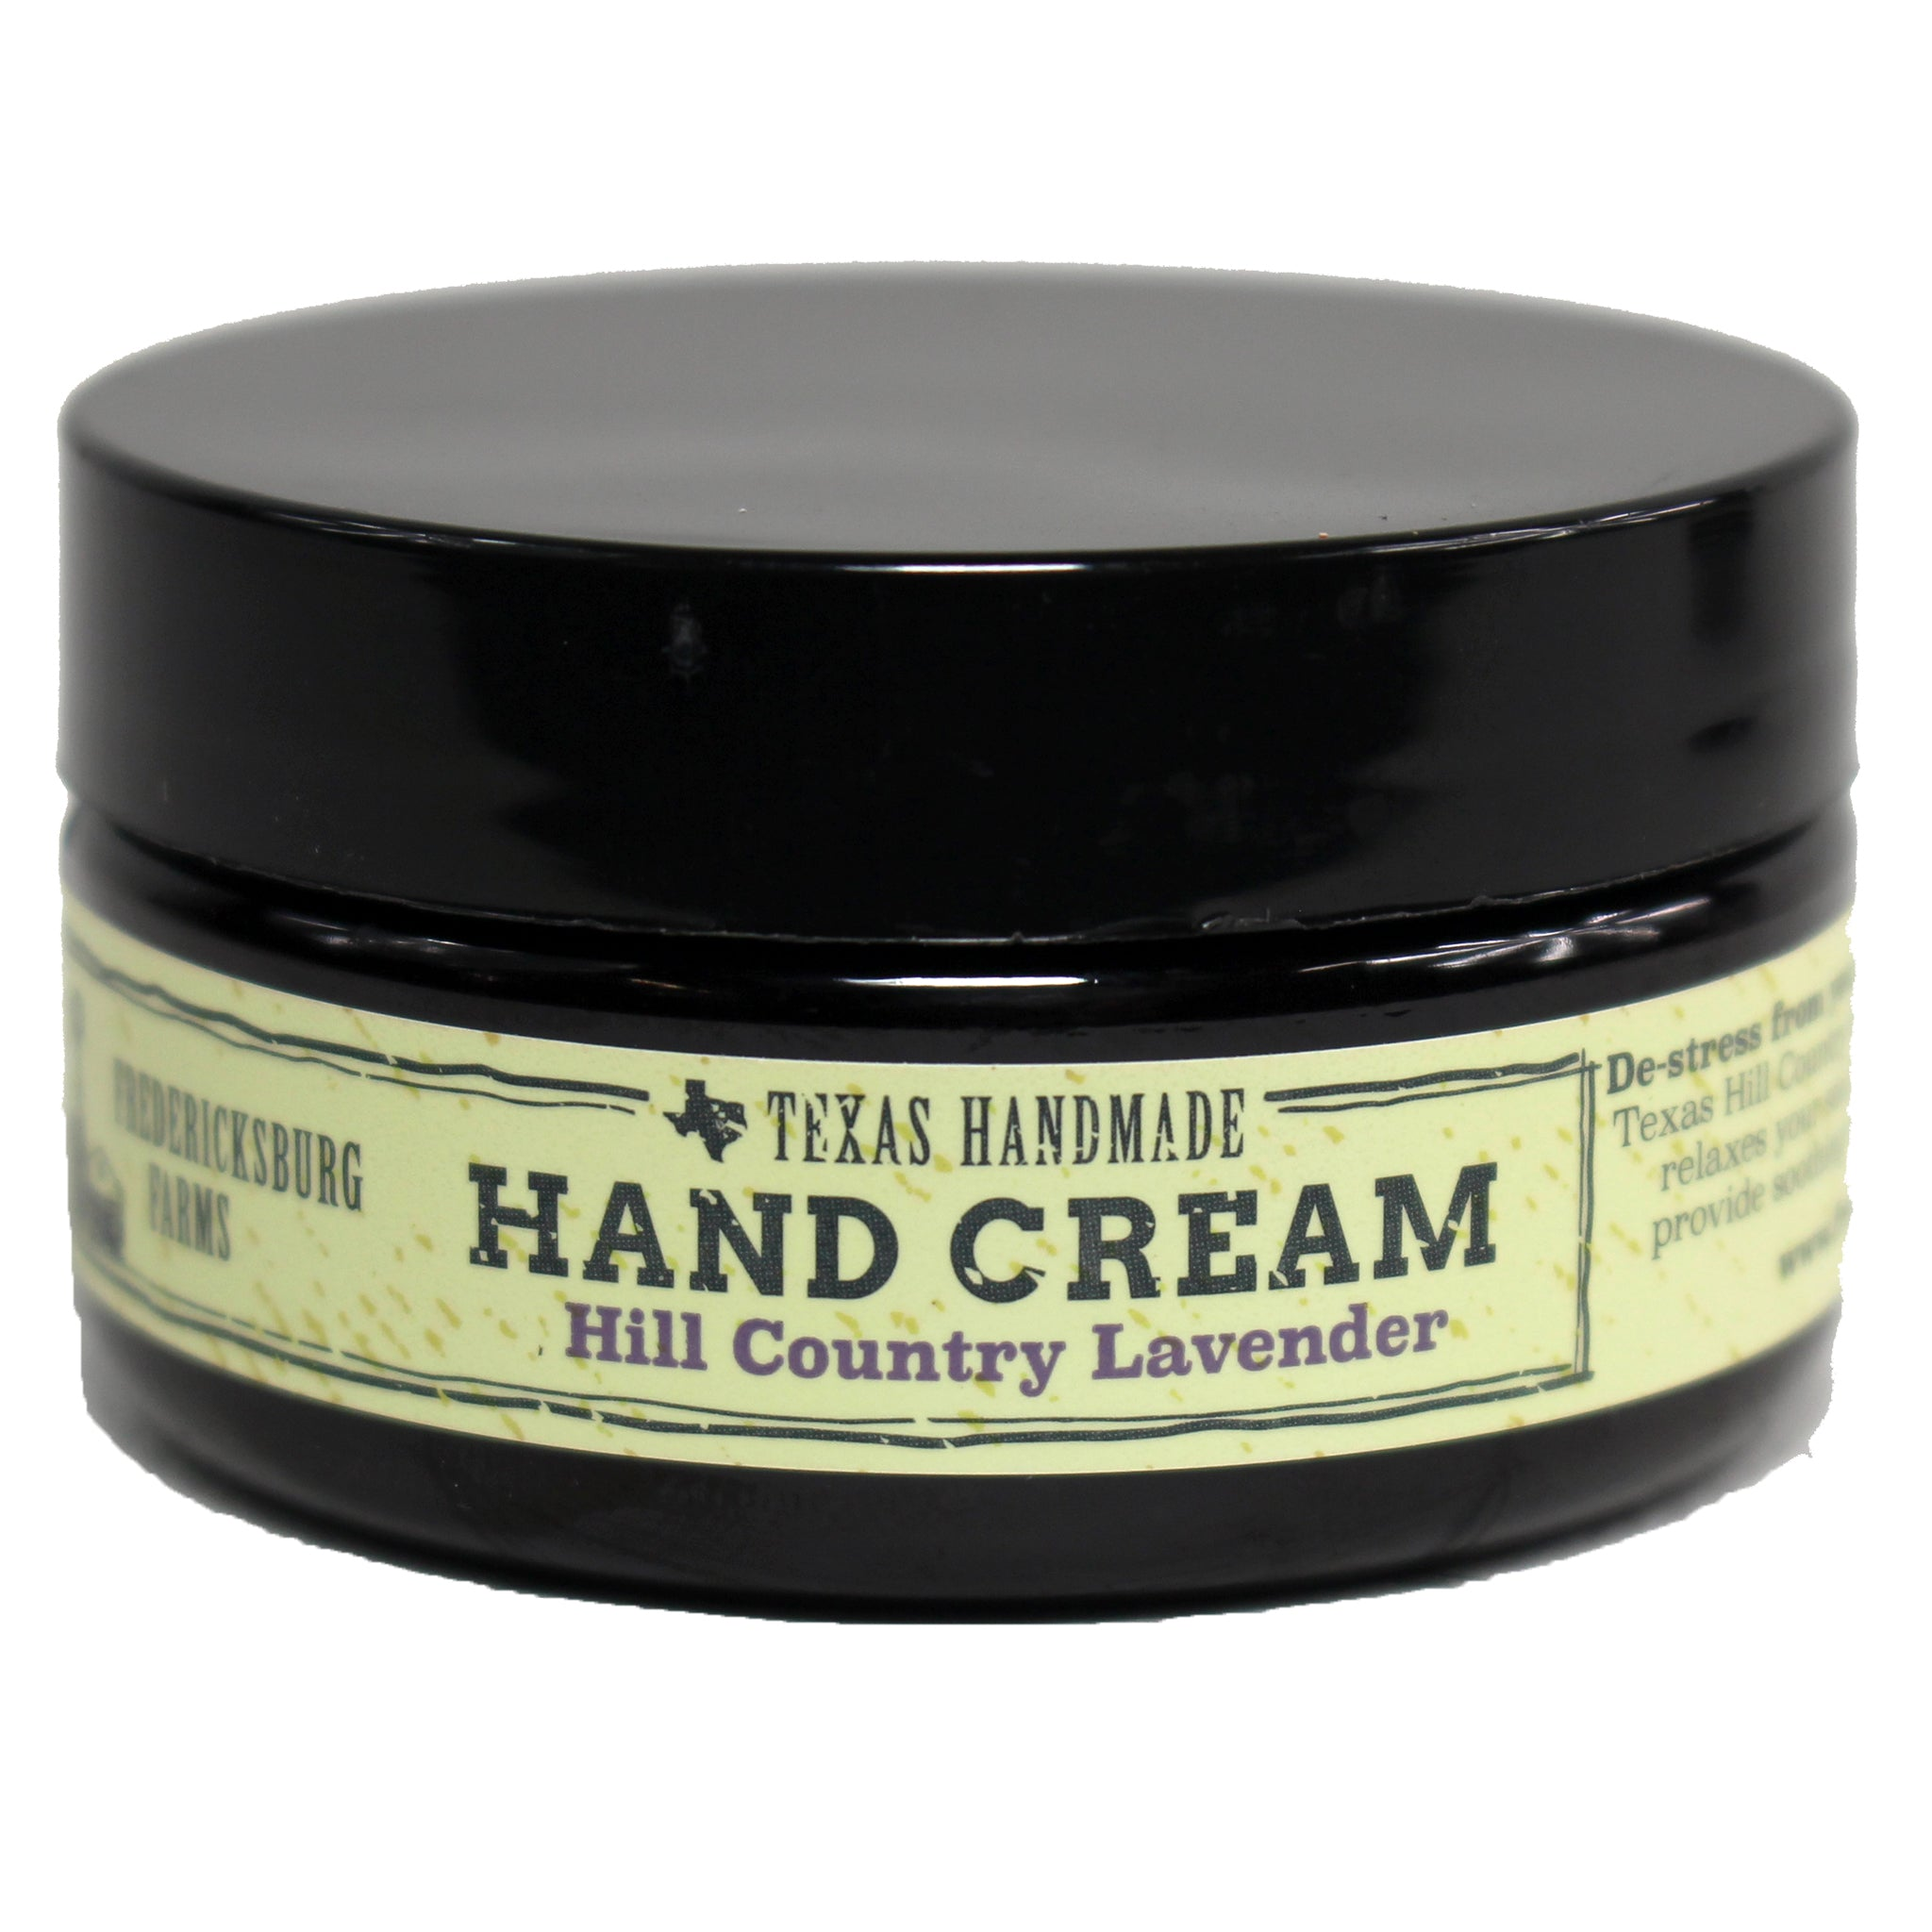 Hill Country Lavender Hand Cream